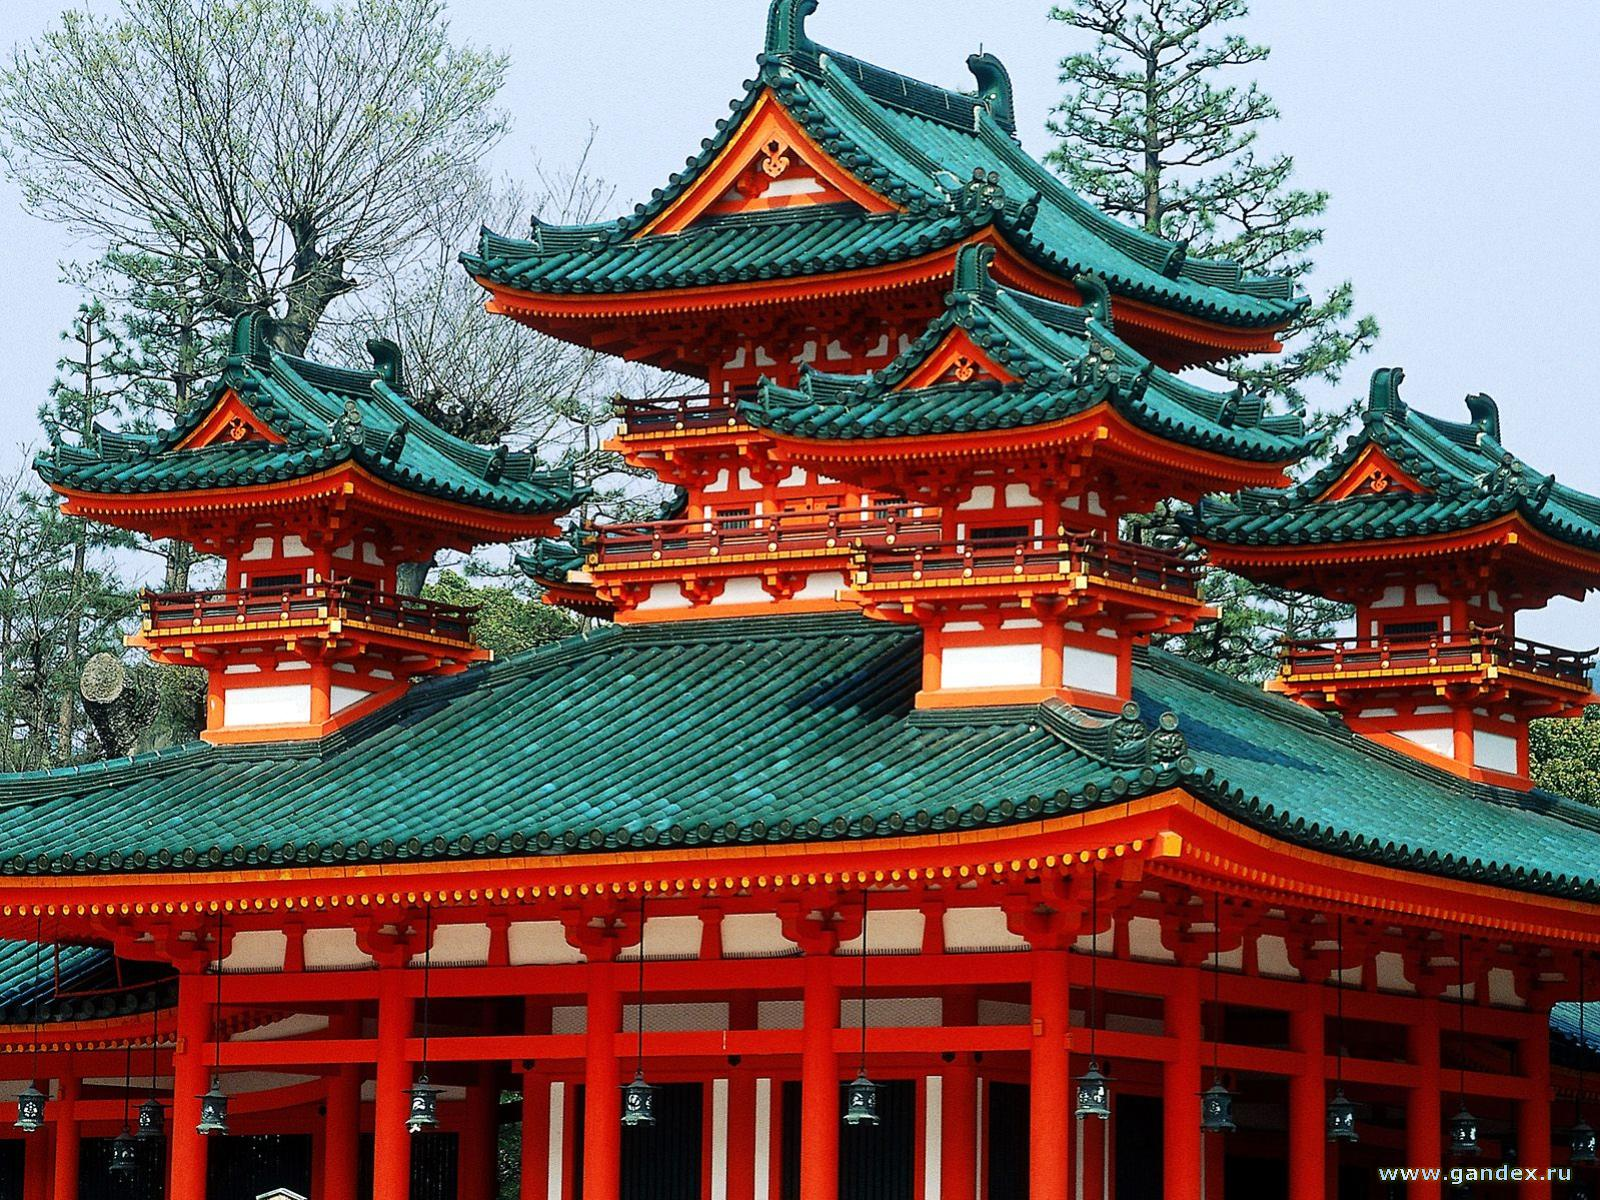 Red House Heian srnu, Kiyoto, Japan - Wallpapers